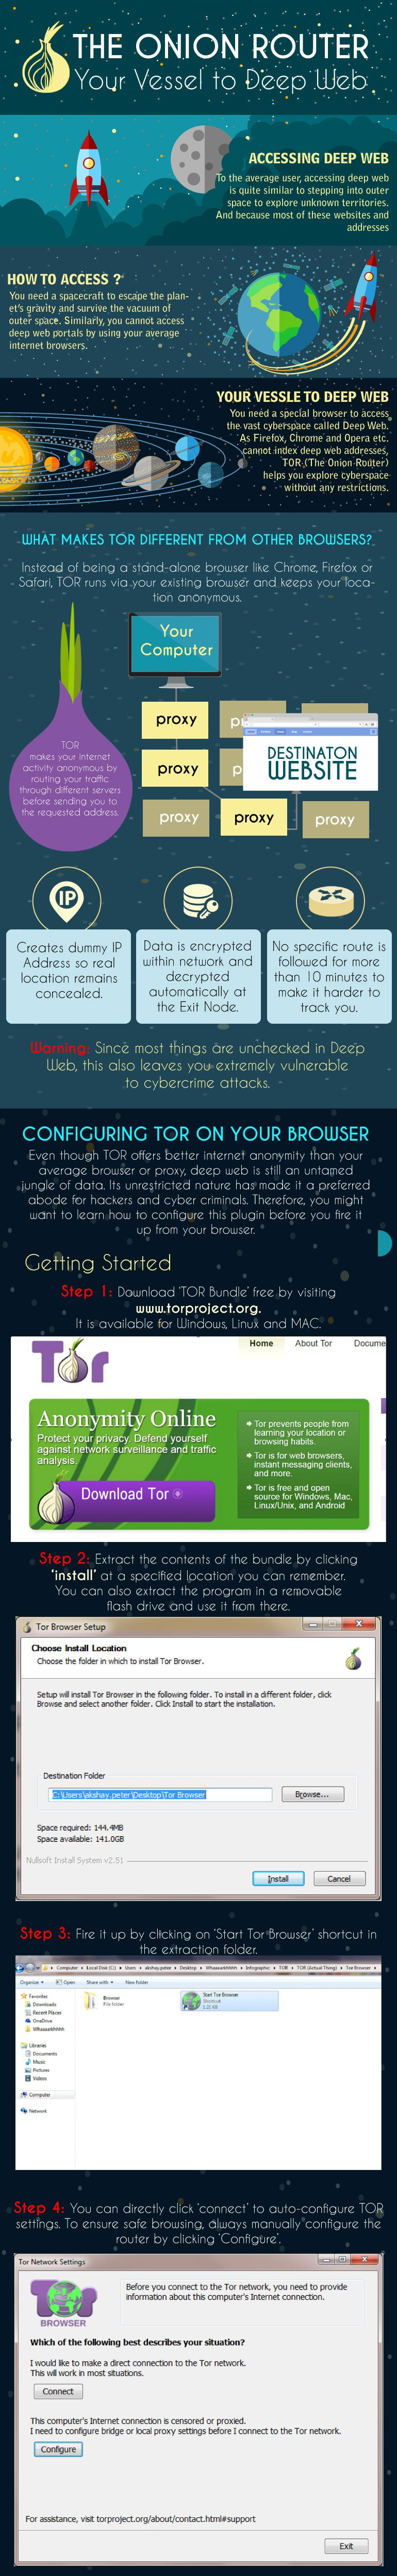 the-onion-router-infographic